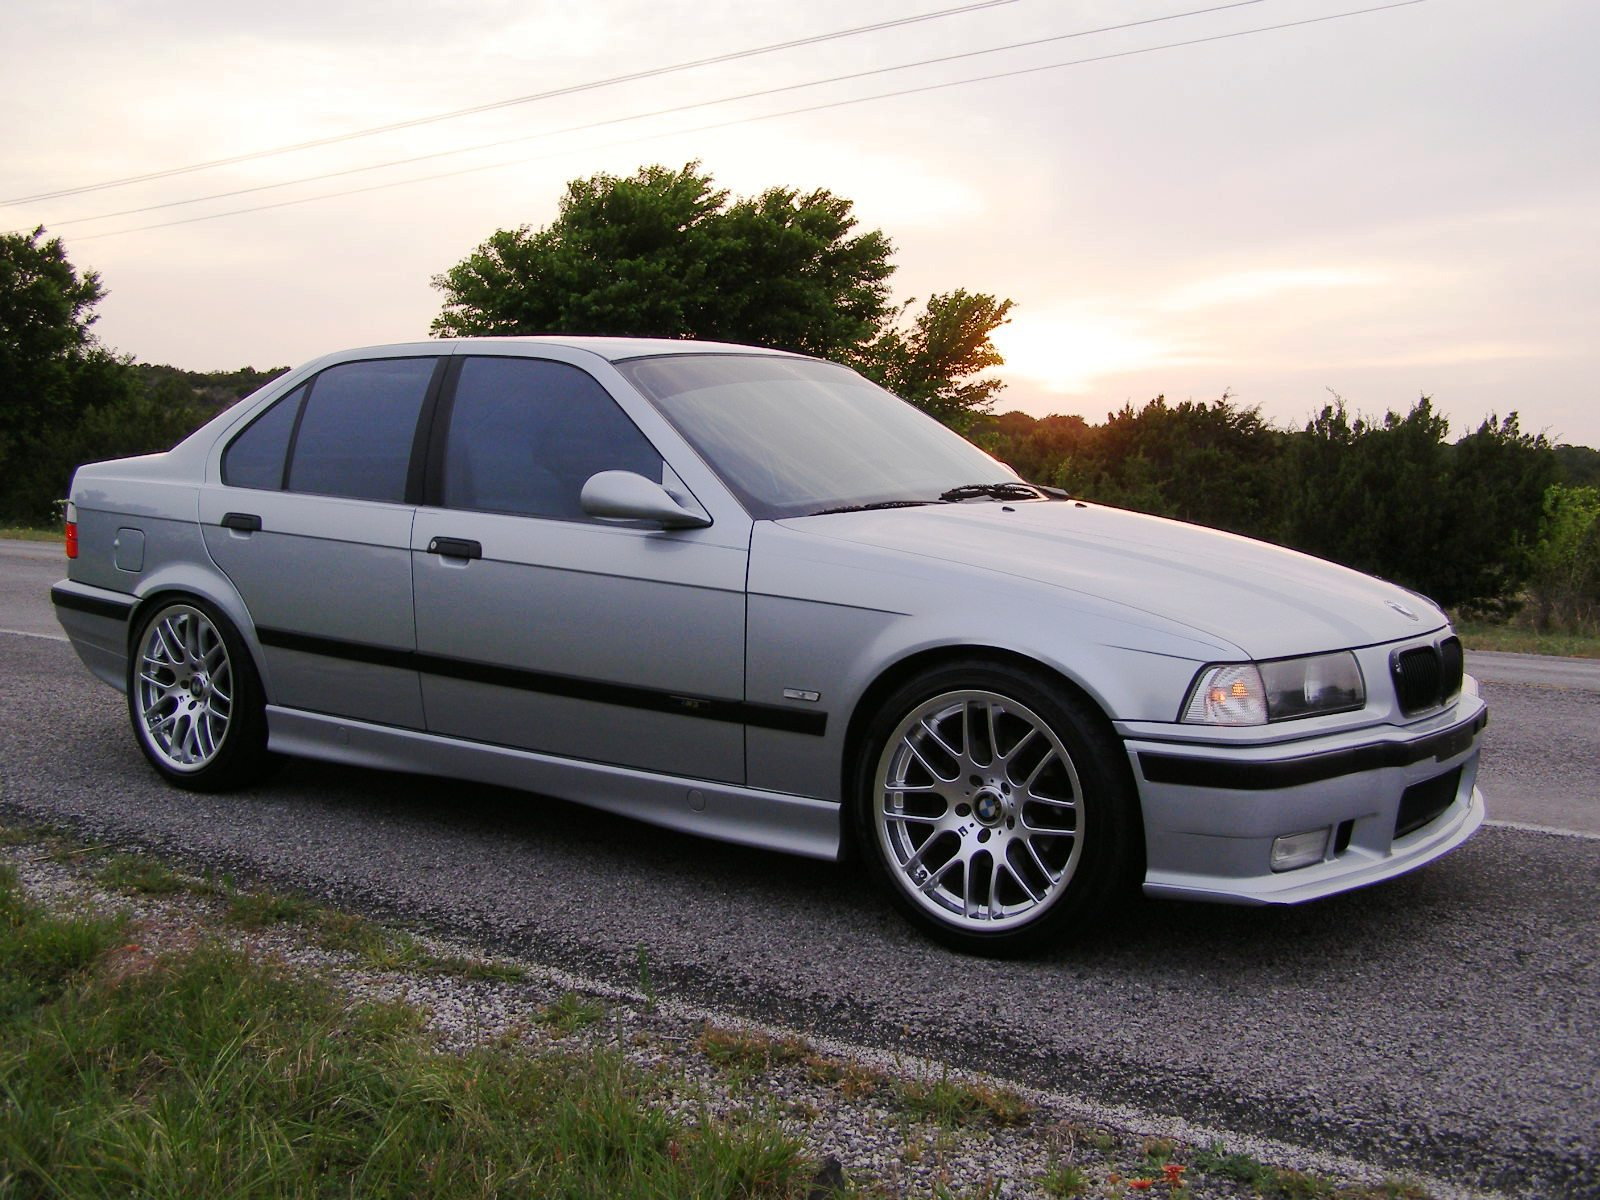 BMW 3 series 325ti 1997 photo - 5